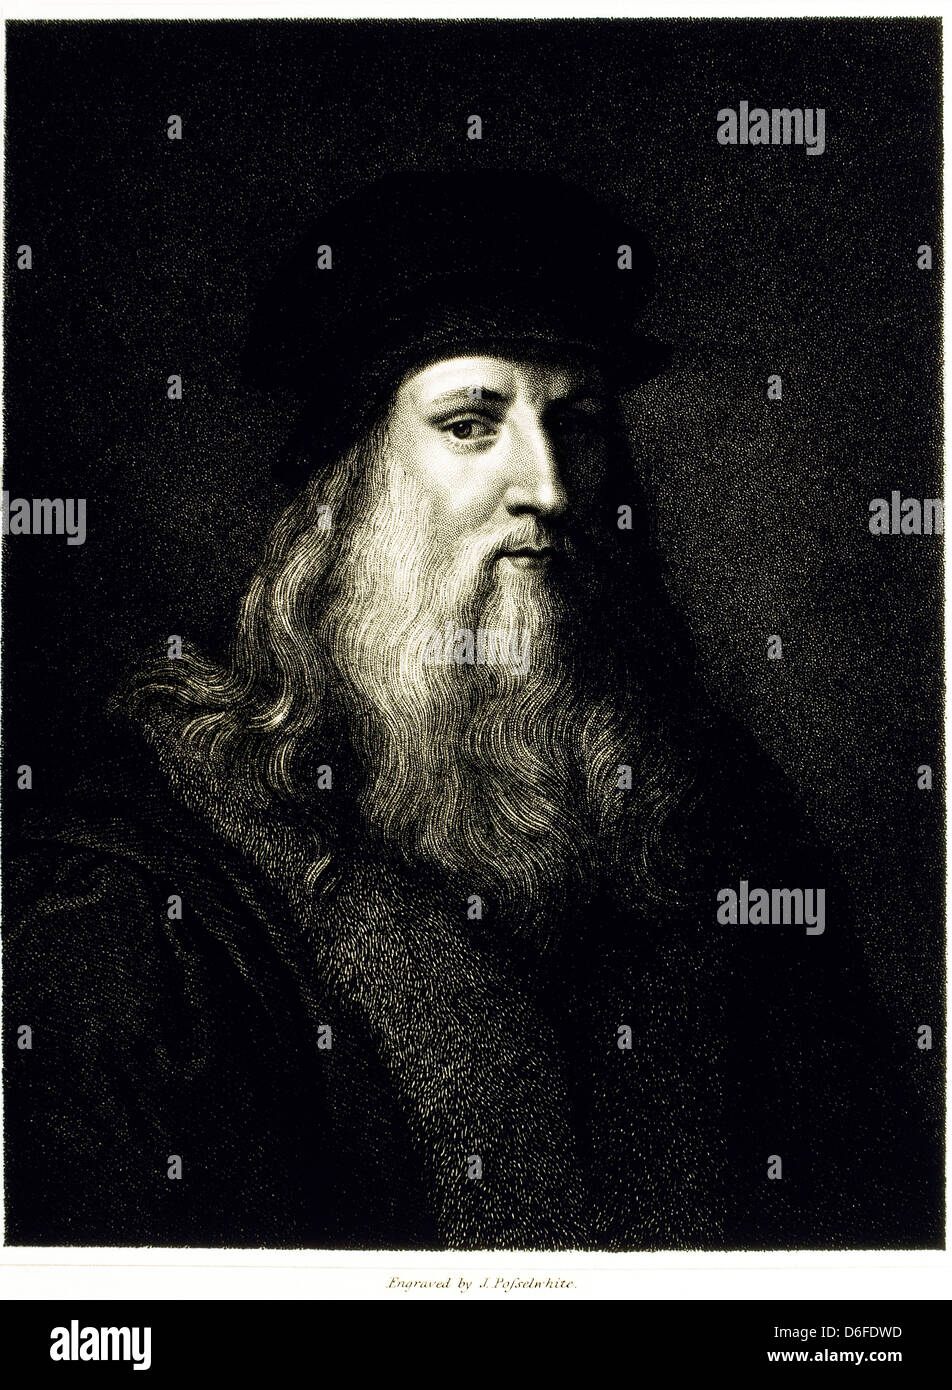 Leonardo da Vinci (1452-1519), Italian Painter, Sculptor, Architect, Engineer & Scientist, Portrait - Stock Image